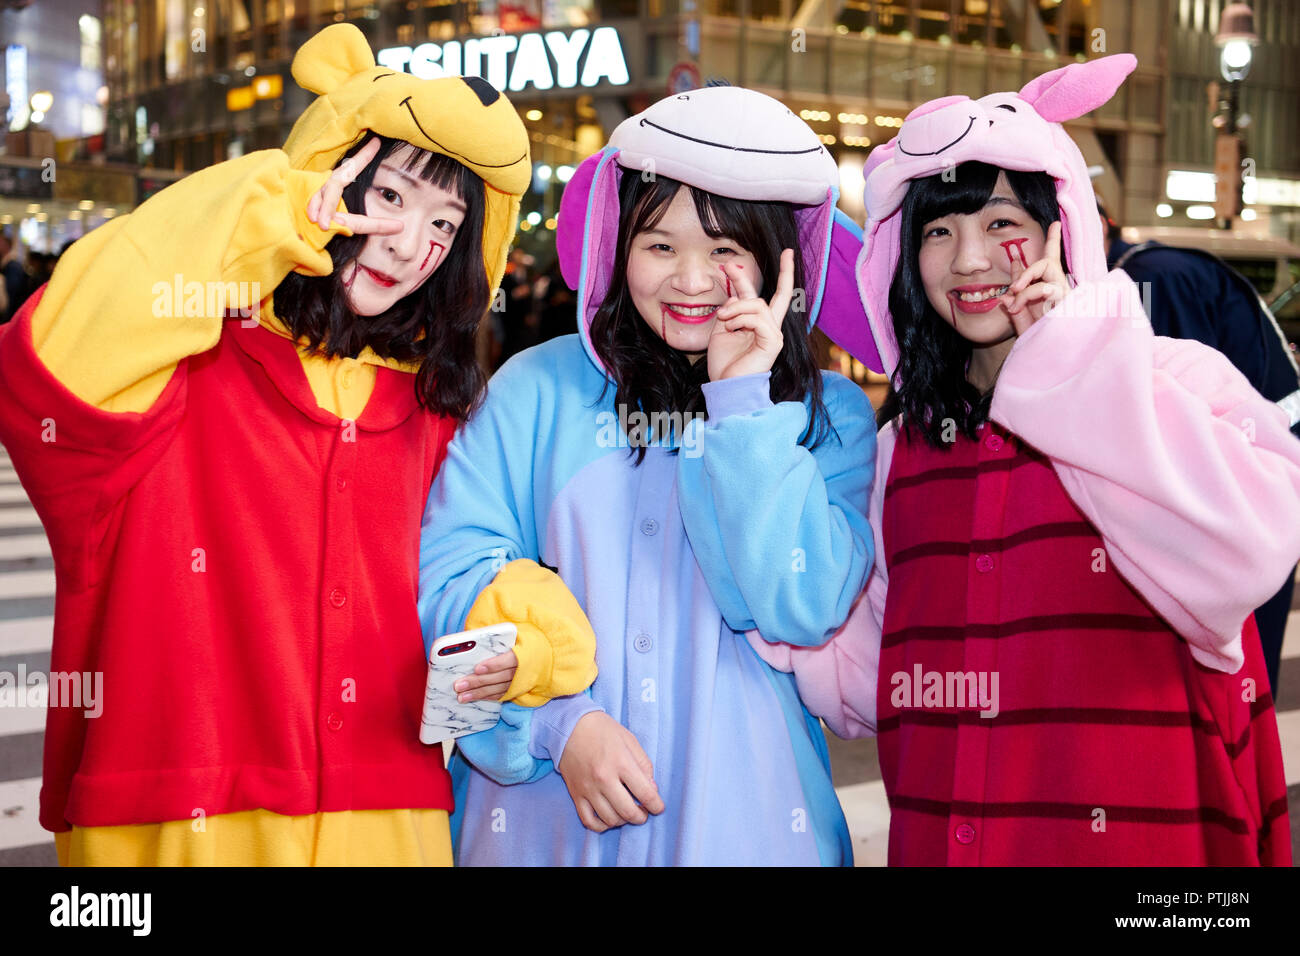 three japanese girls dressed as winnie the pooh with eeyore and